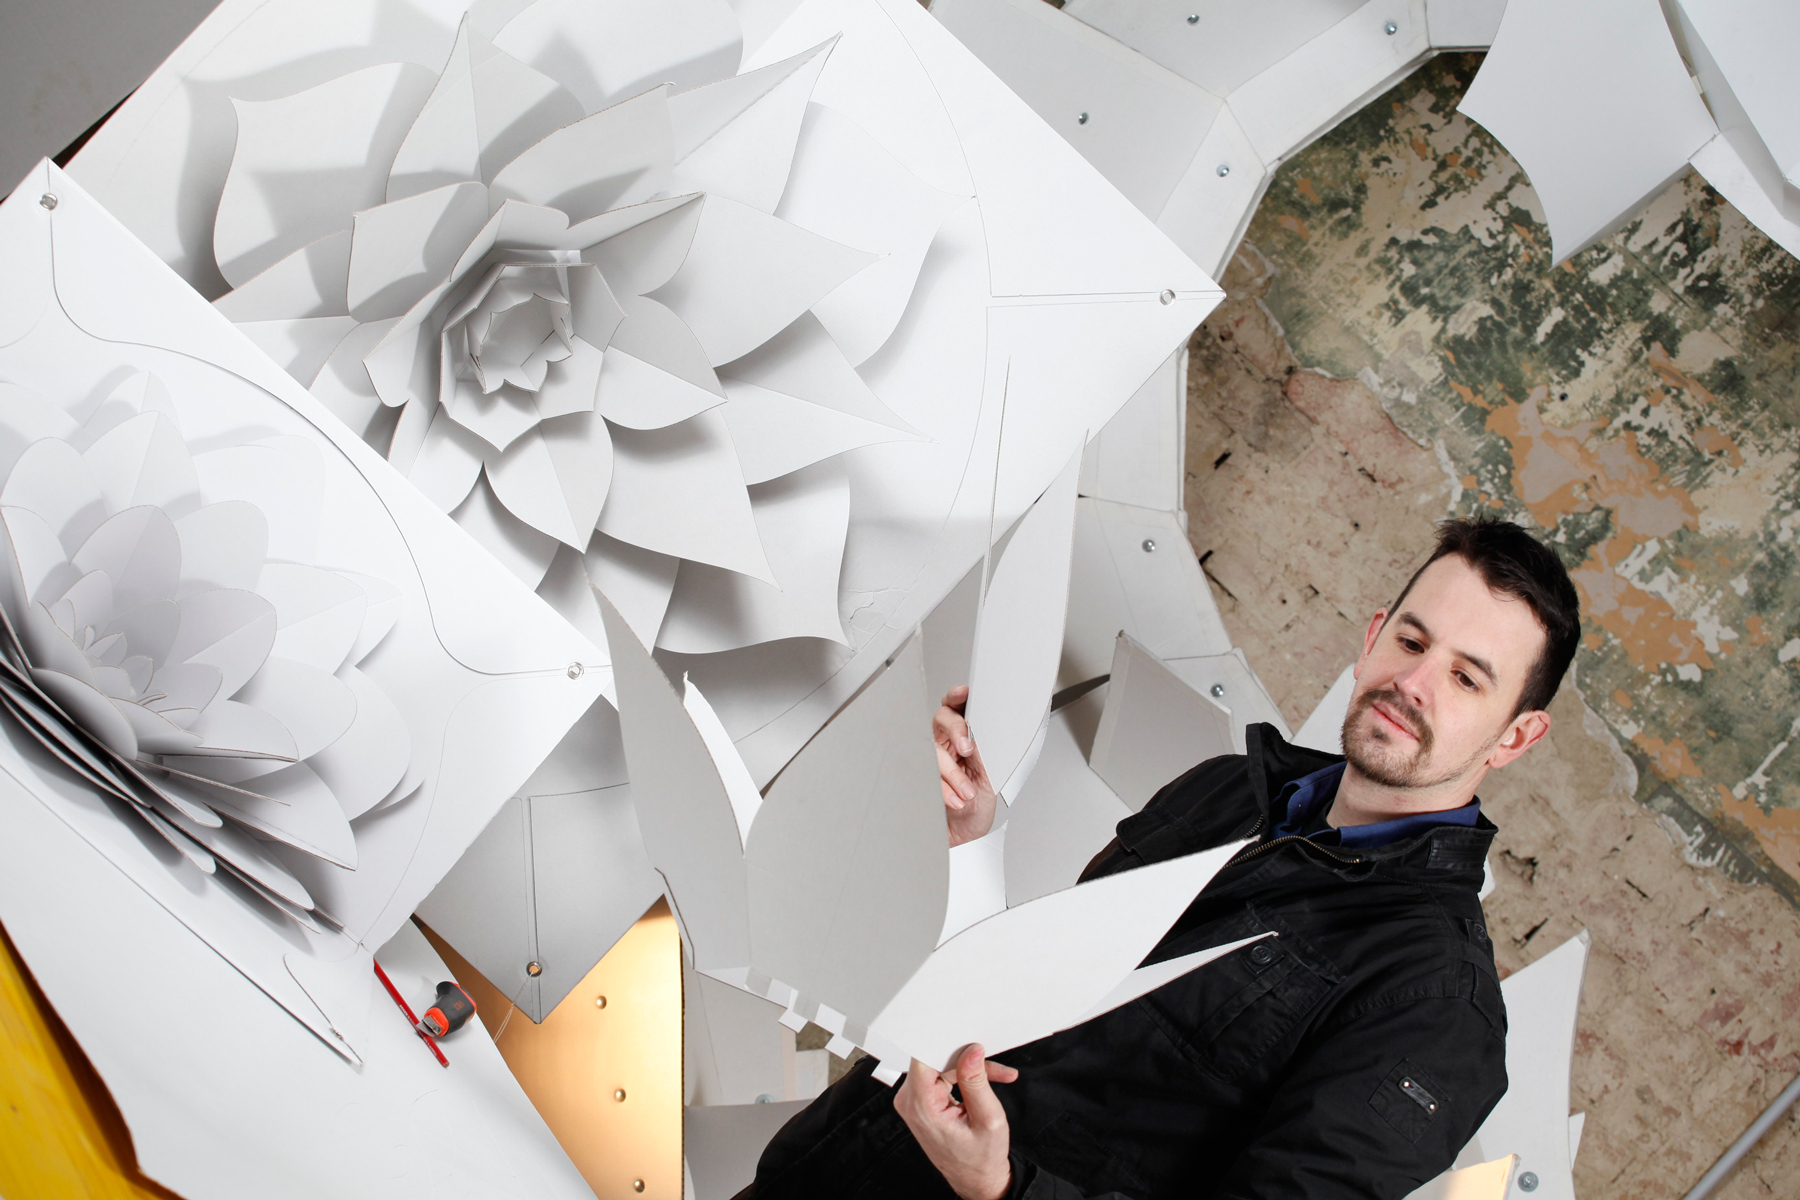 A business made of cardboard